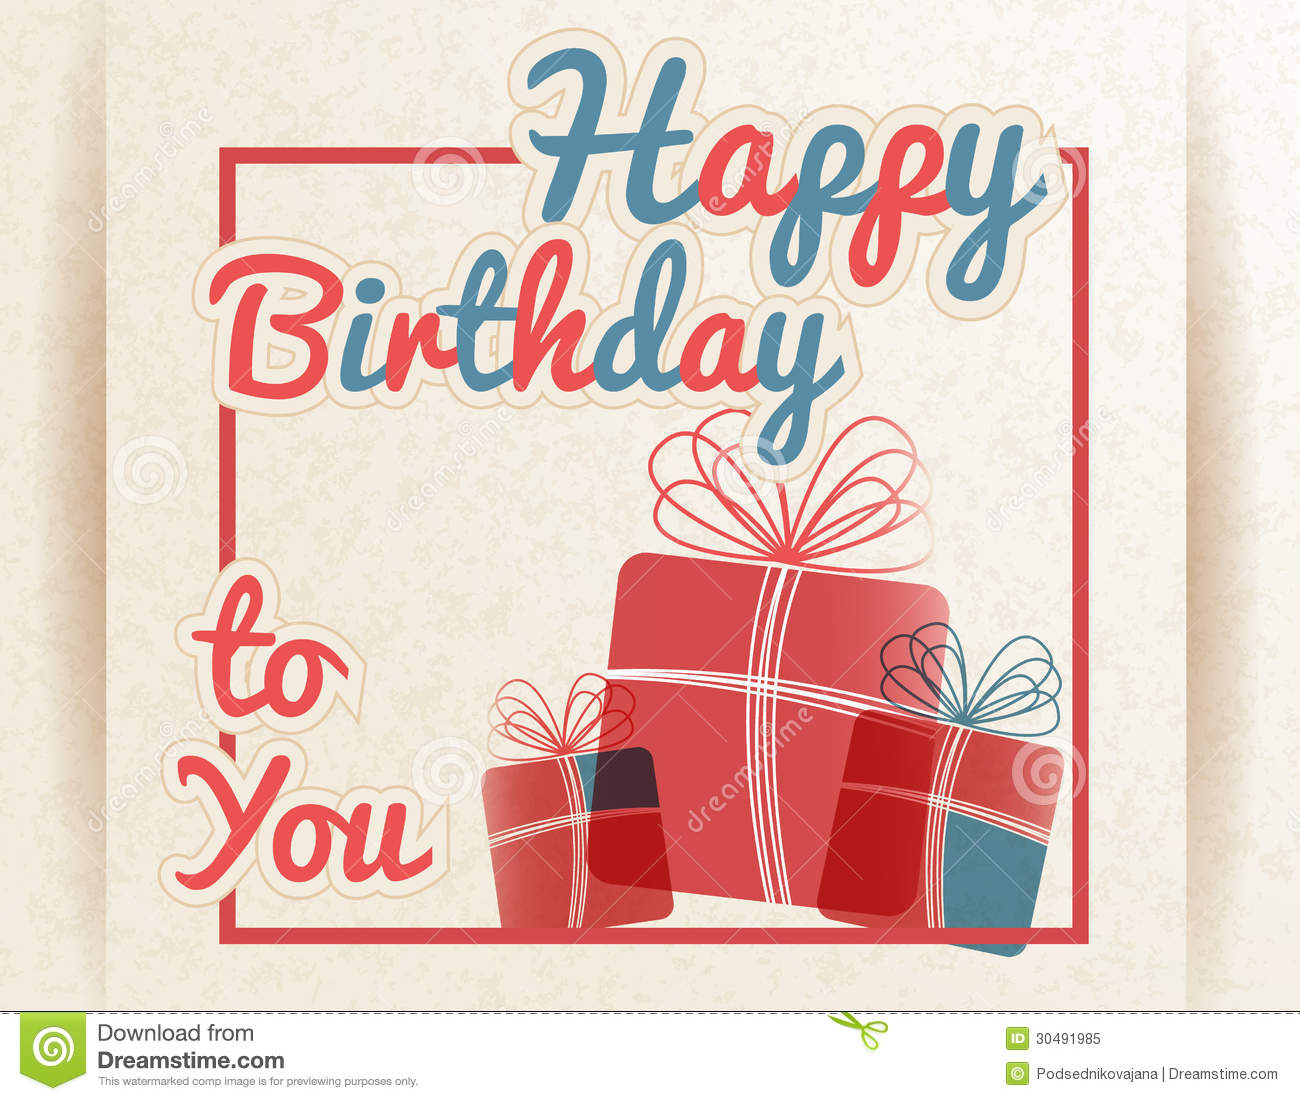 Retro Happy Birthday To You With Gifts Vector Illustration Download Preview